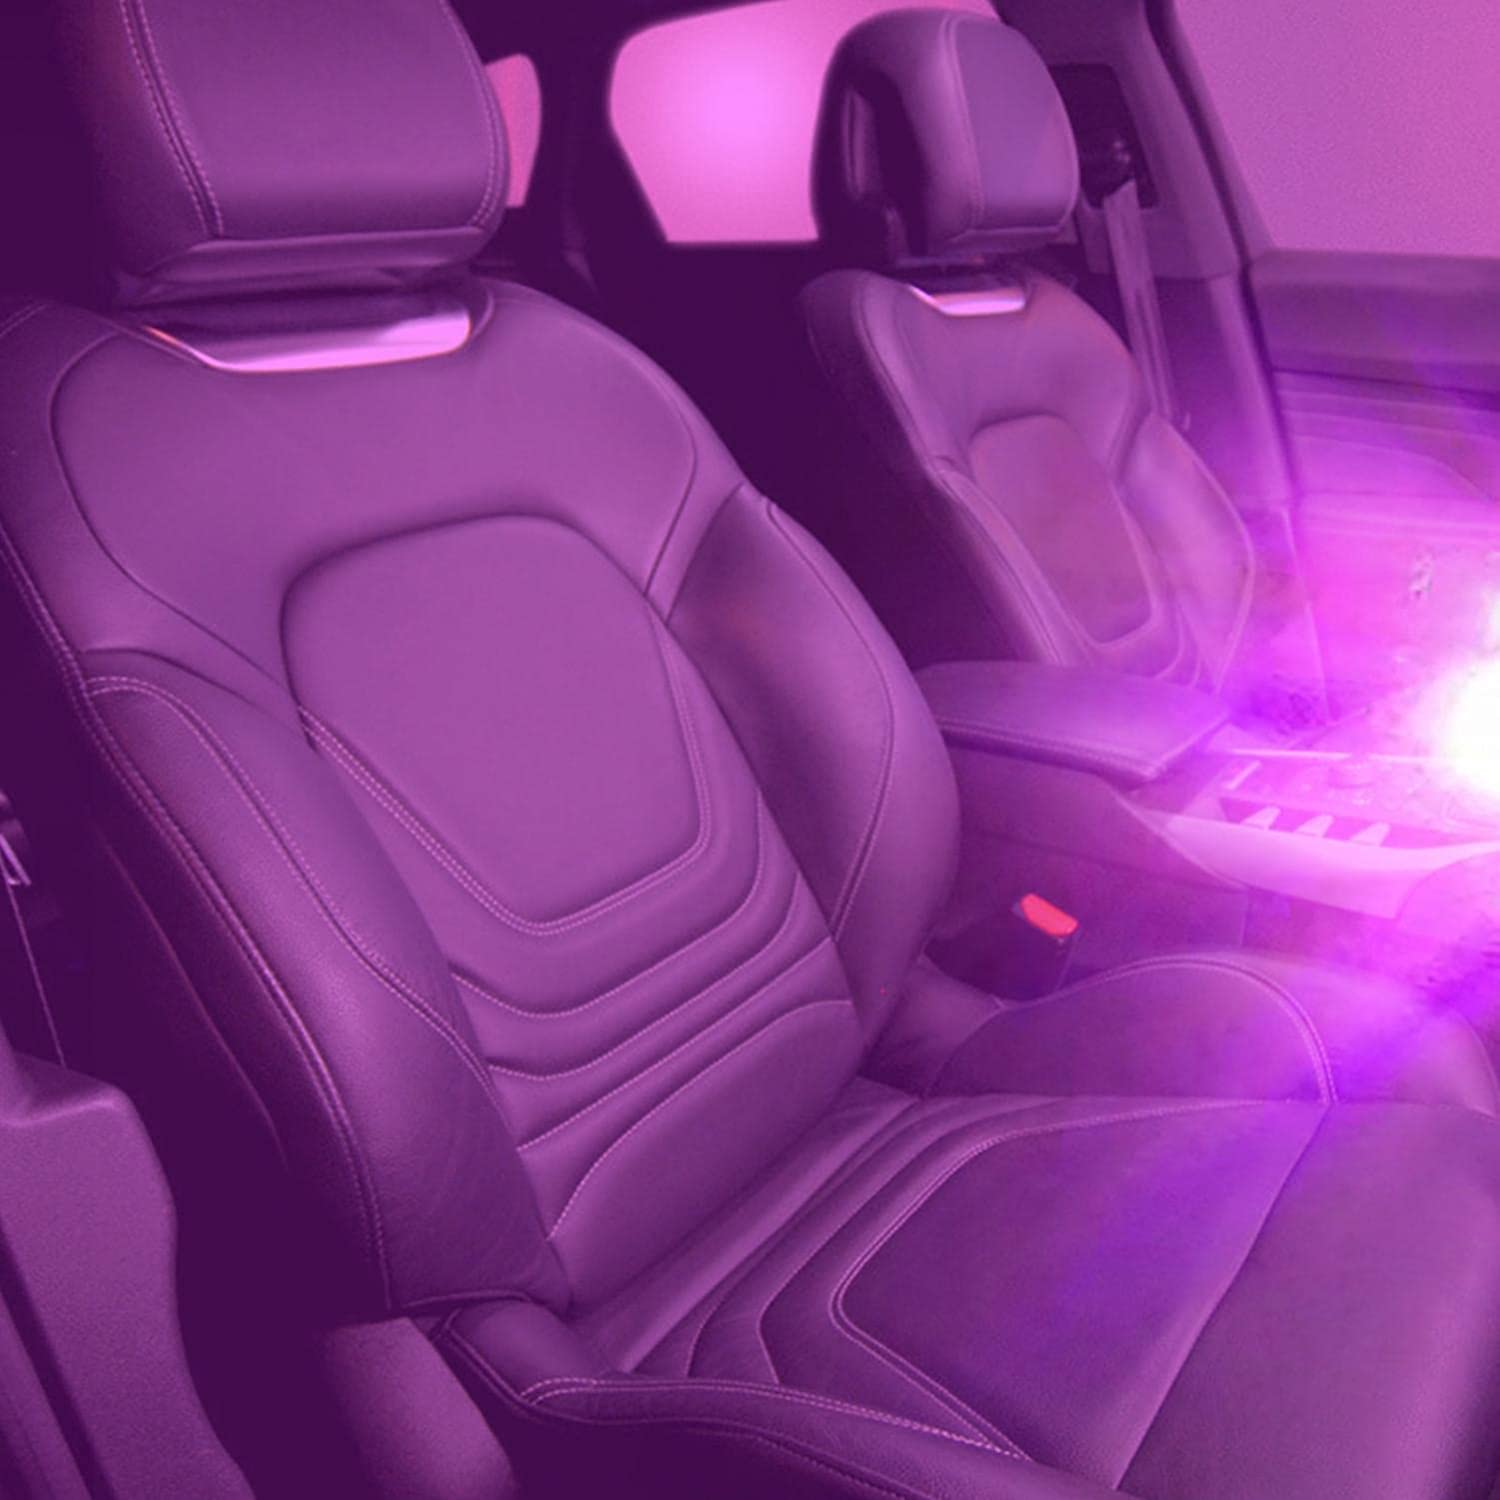 Interior Car Lights ,Car Accessories Car Led Lights ,USB Flexible Interior LED Show Romantic Atmosphere Star Night Projector for Cars,Bedrooms,Parties,etc